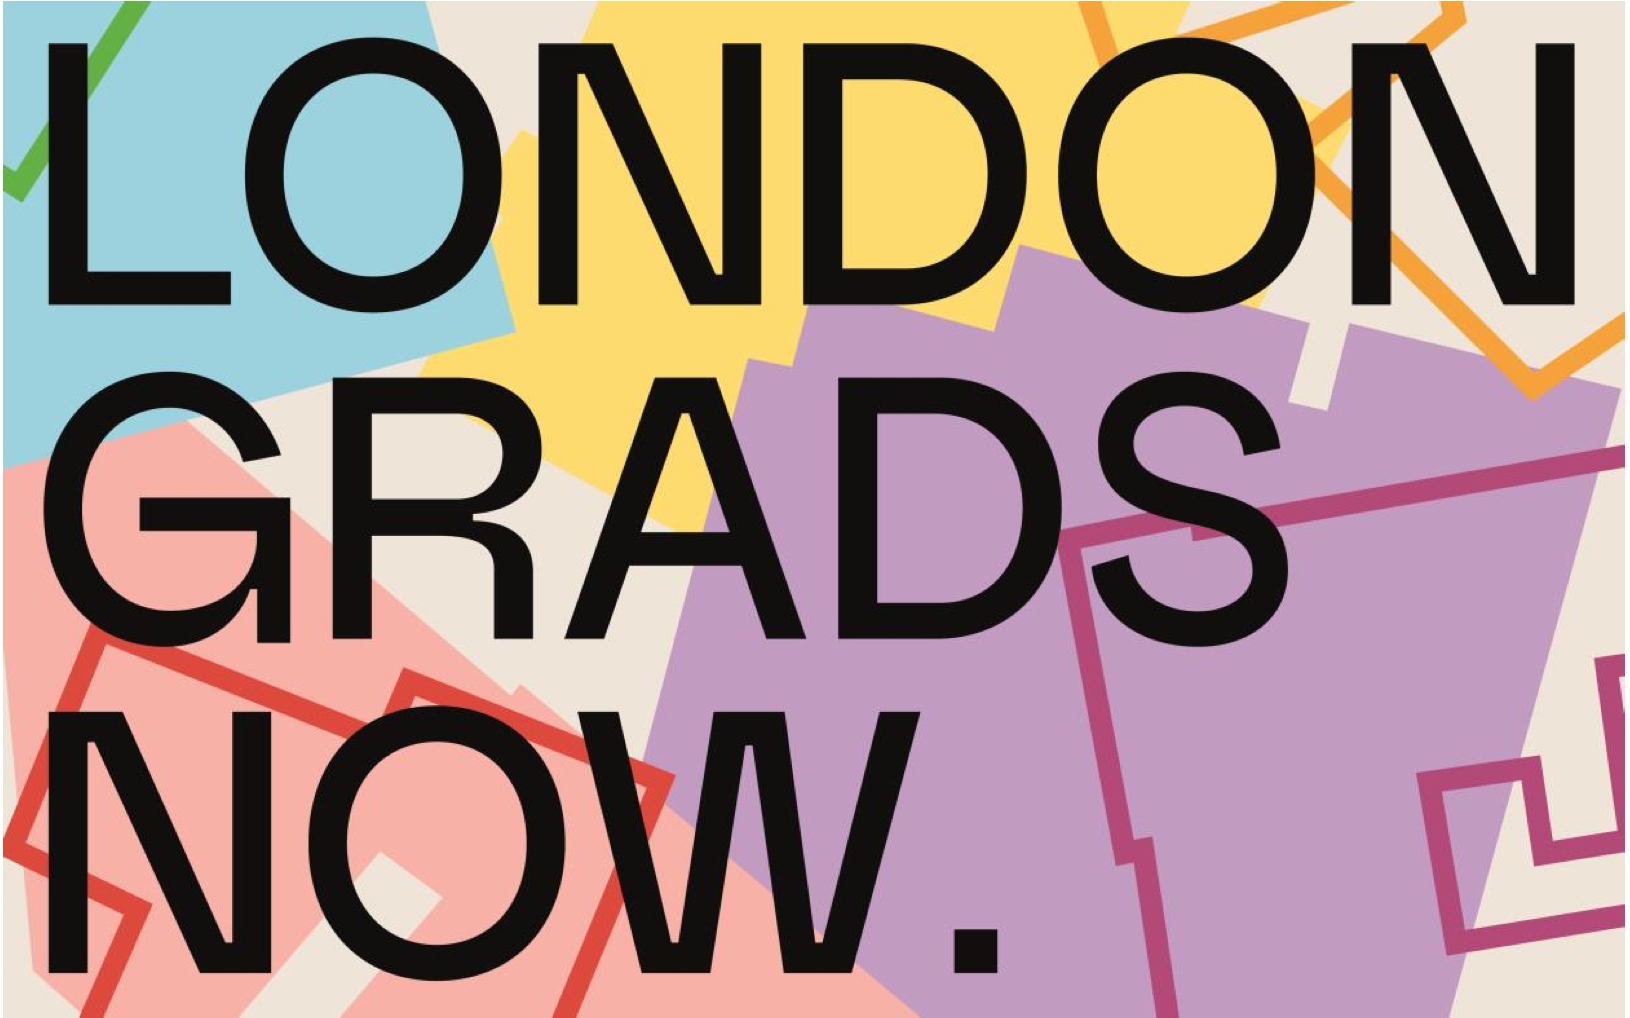 London Grads Now - Saatchi Gallery